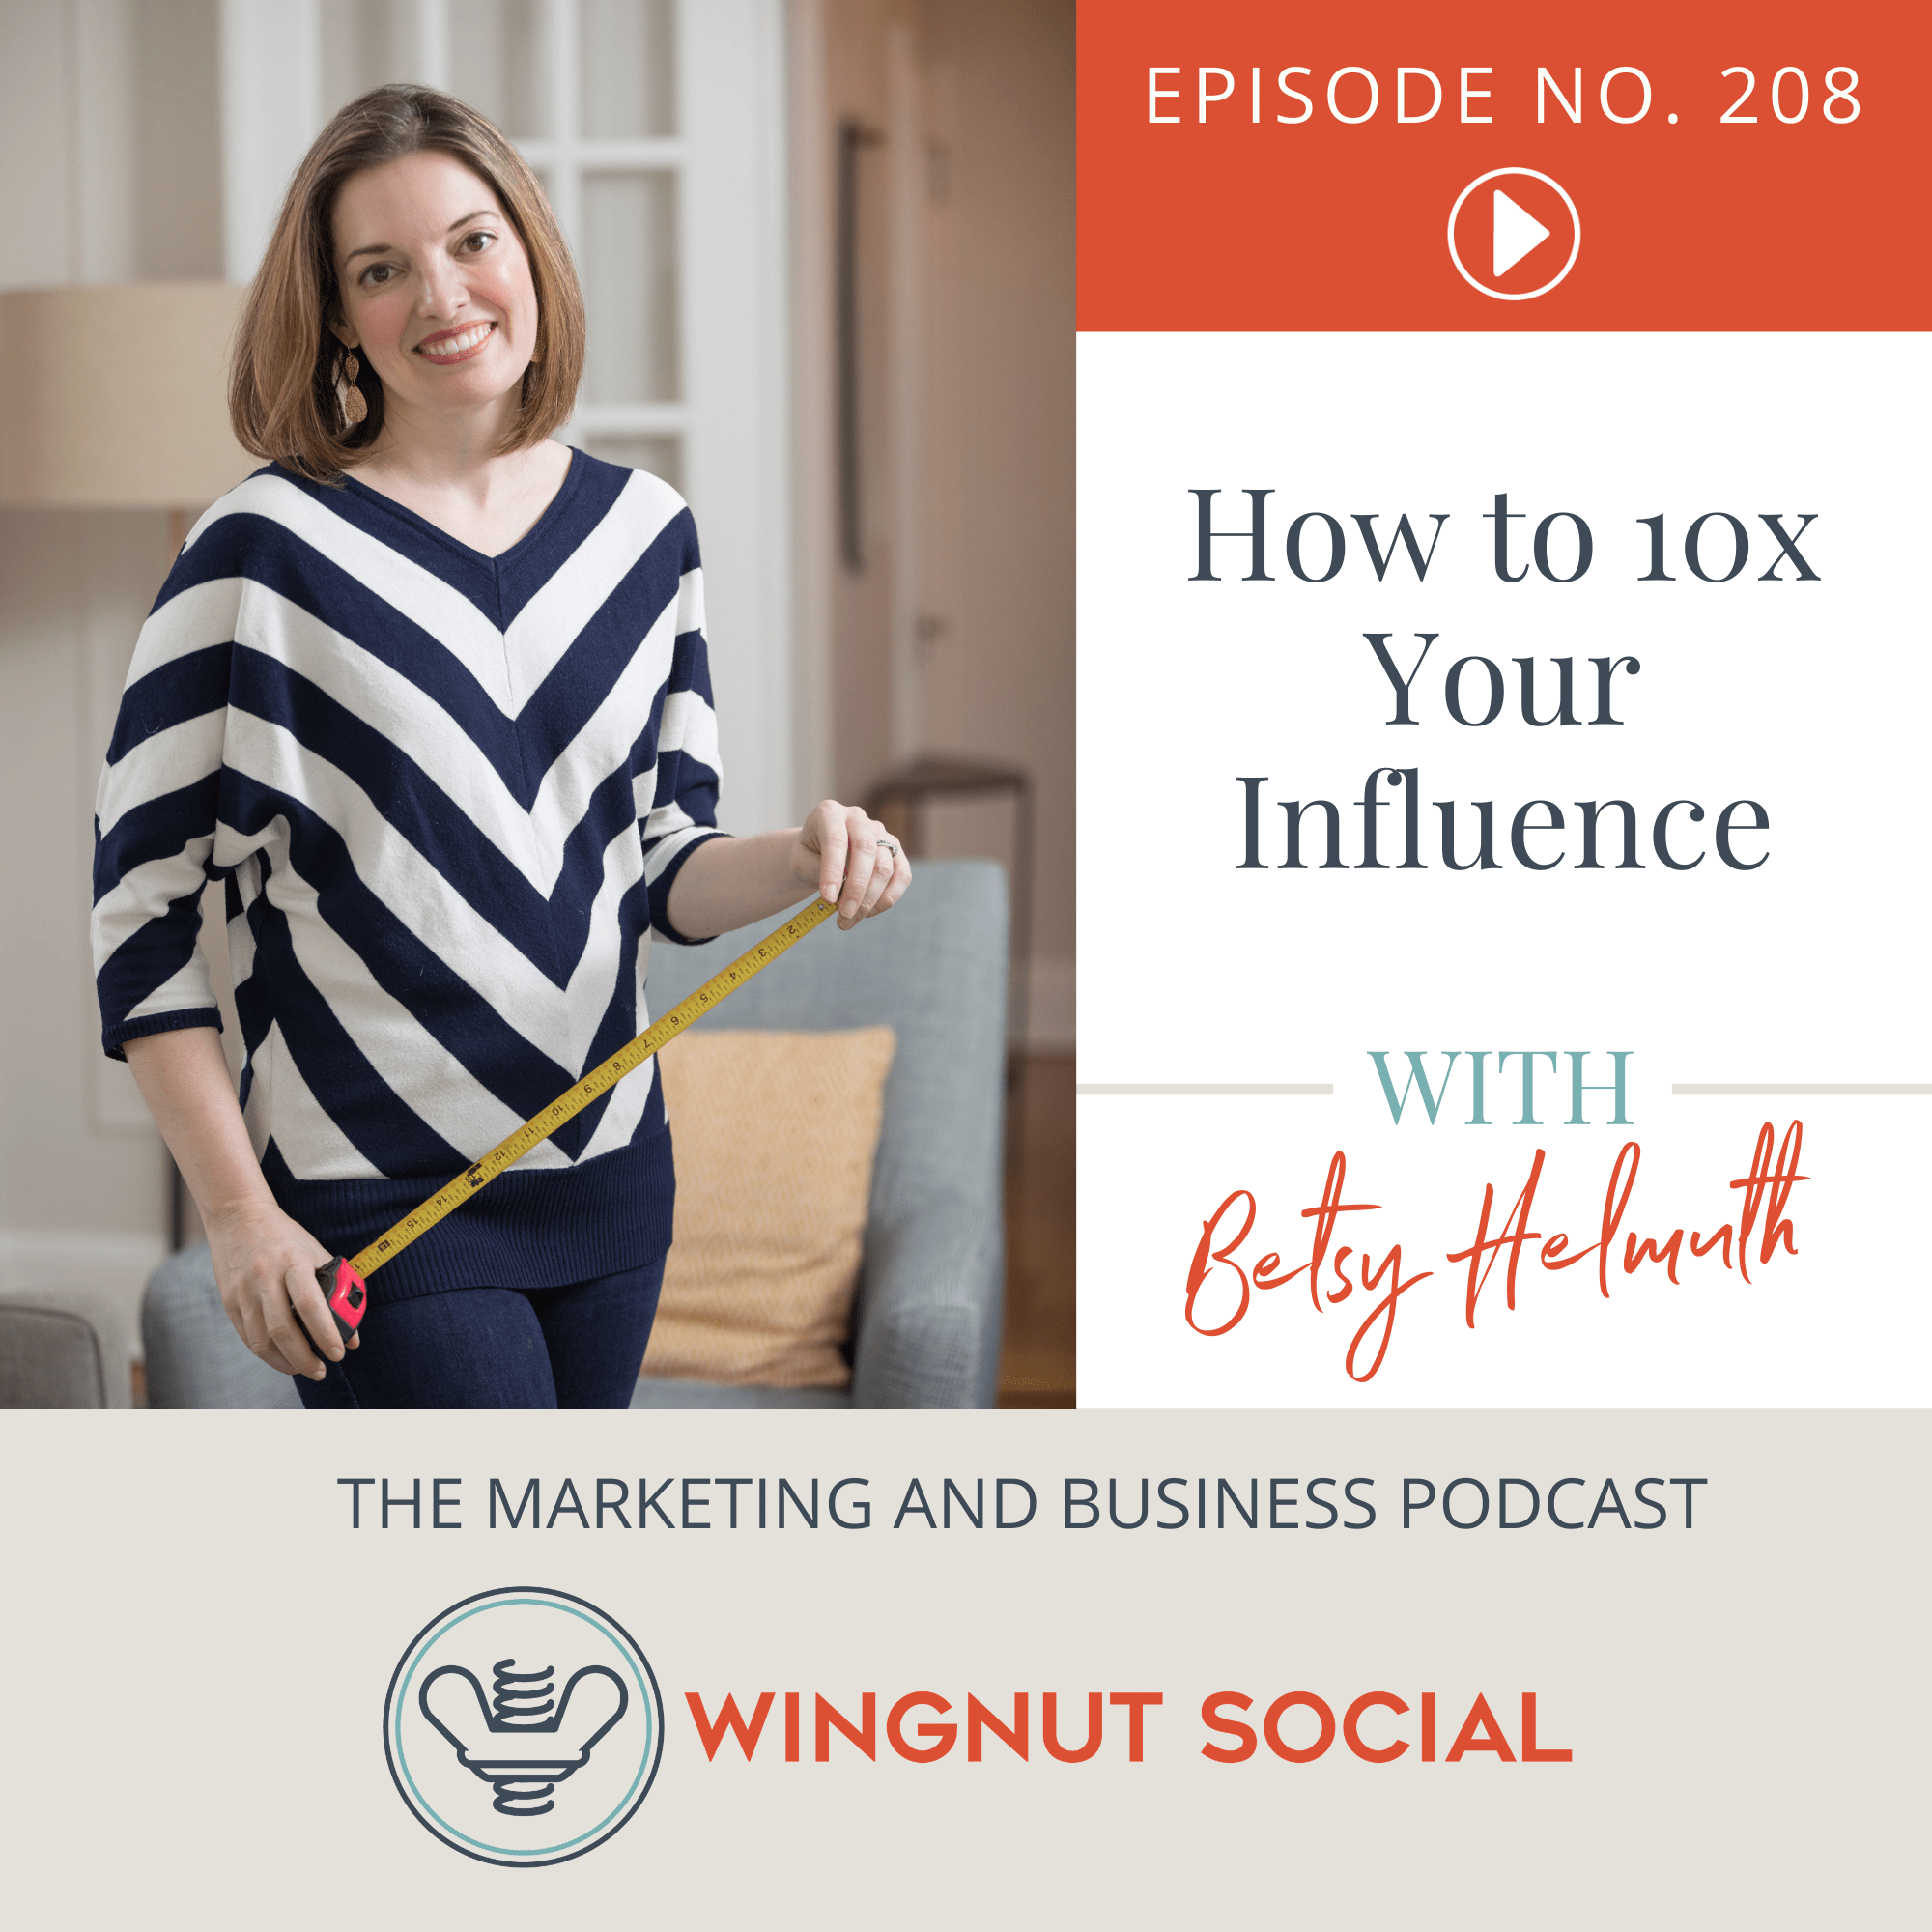 [Replay] Betsy Helmuth's Guide to 10x Your Influence - Episode 208